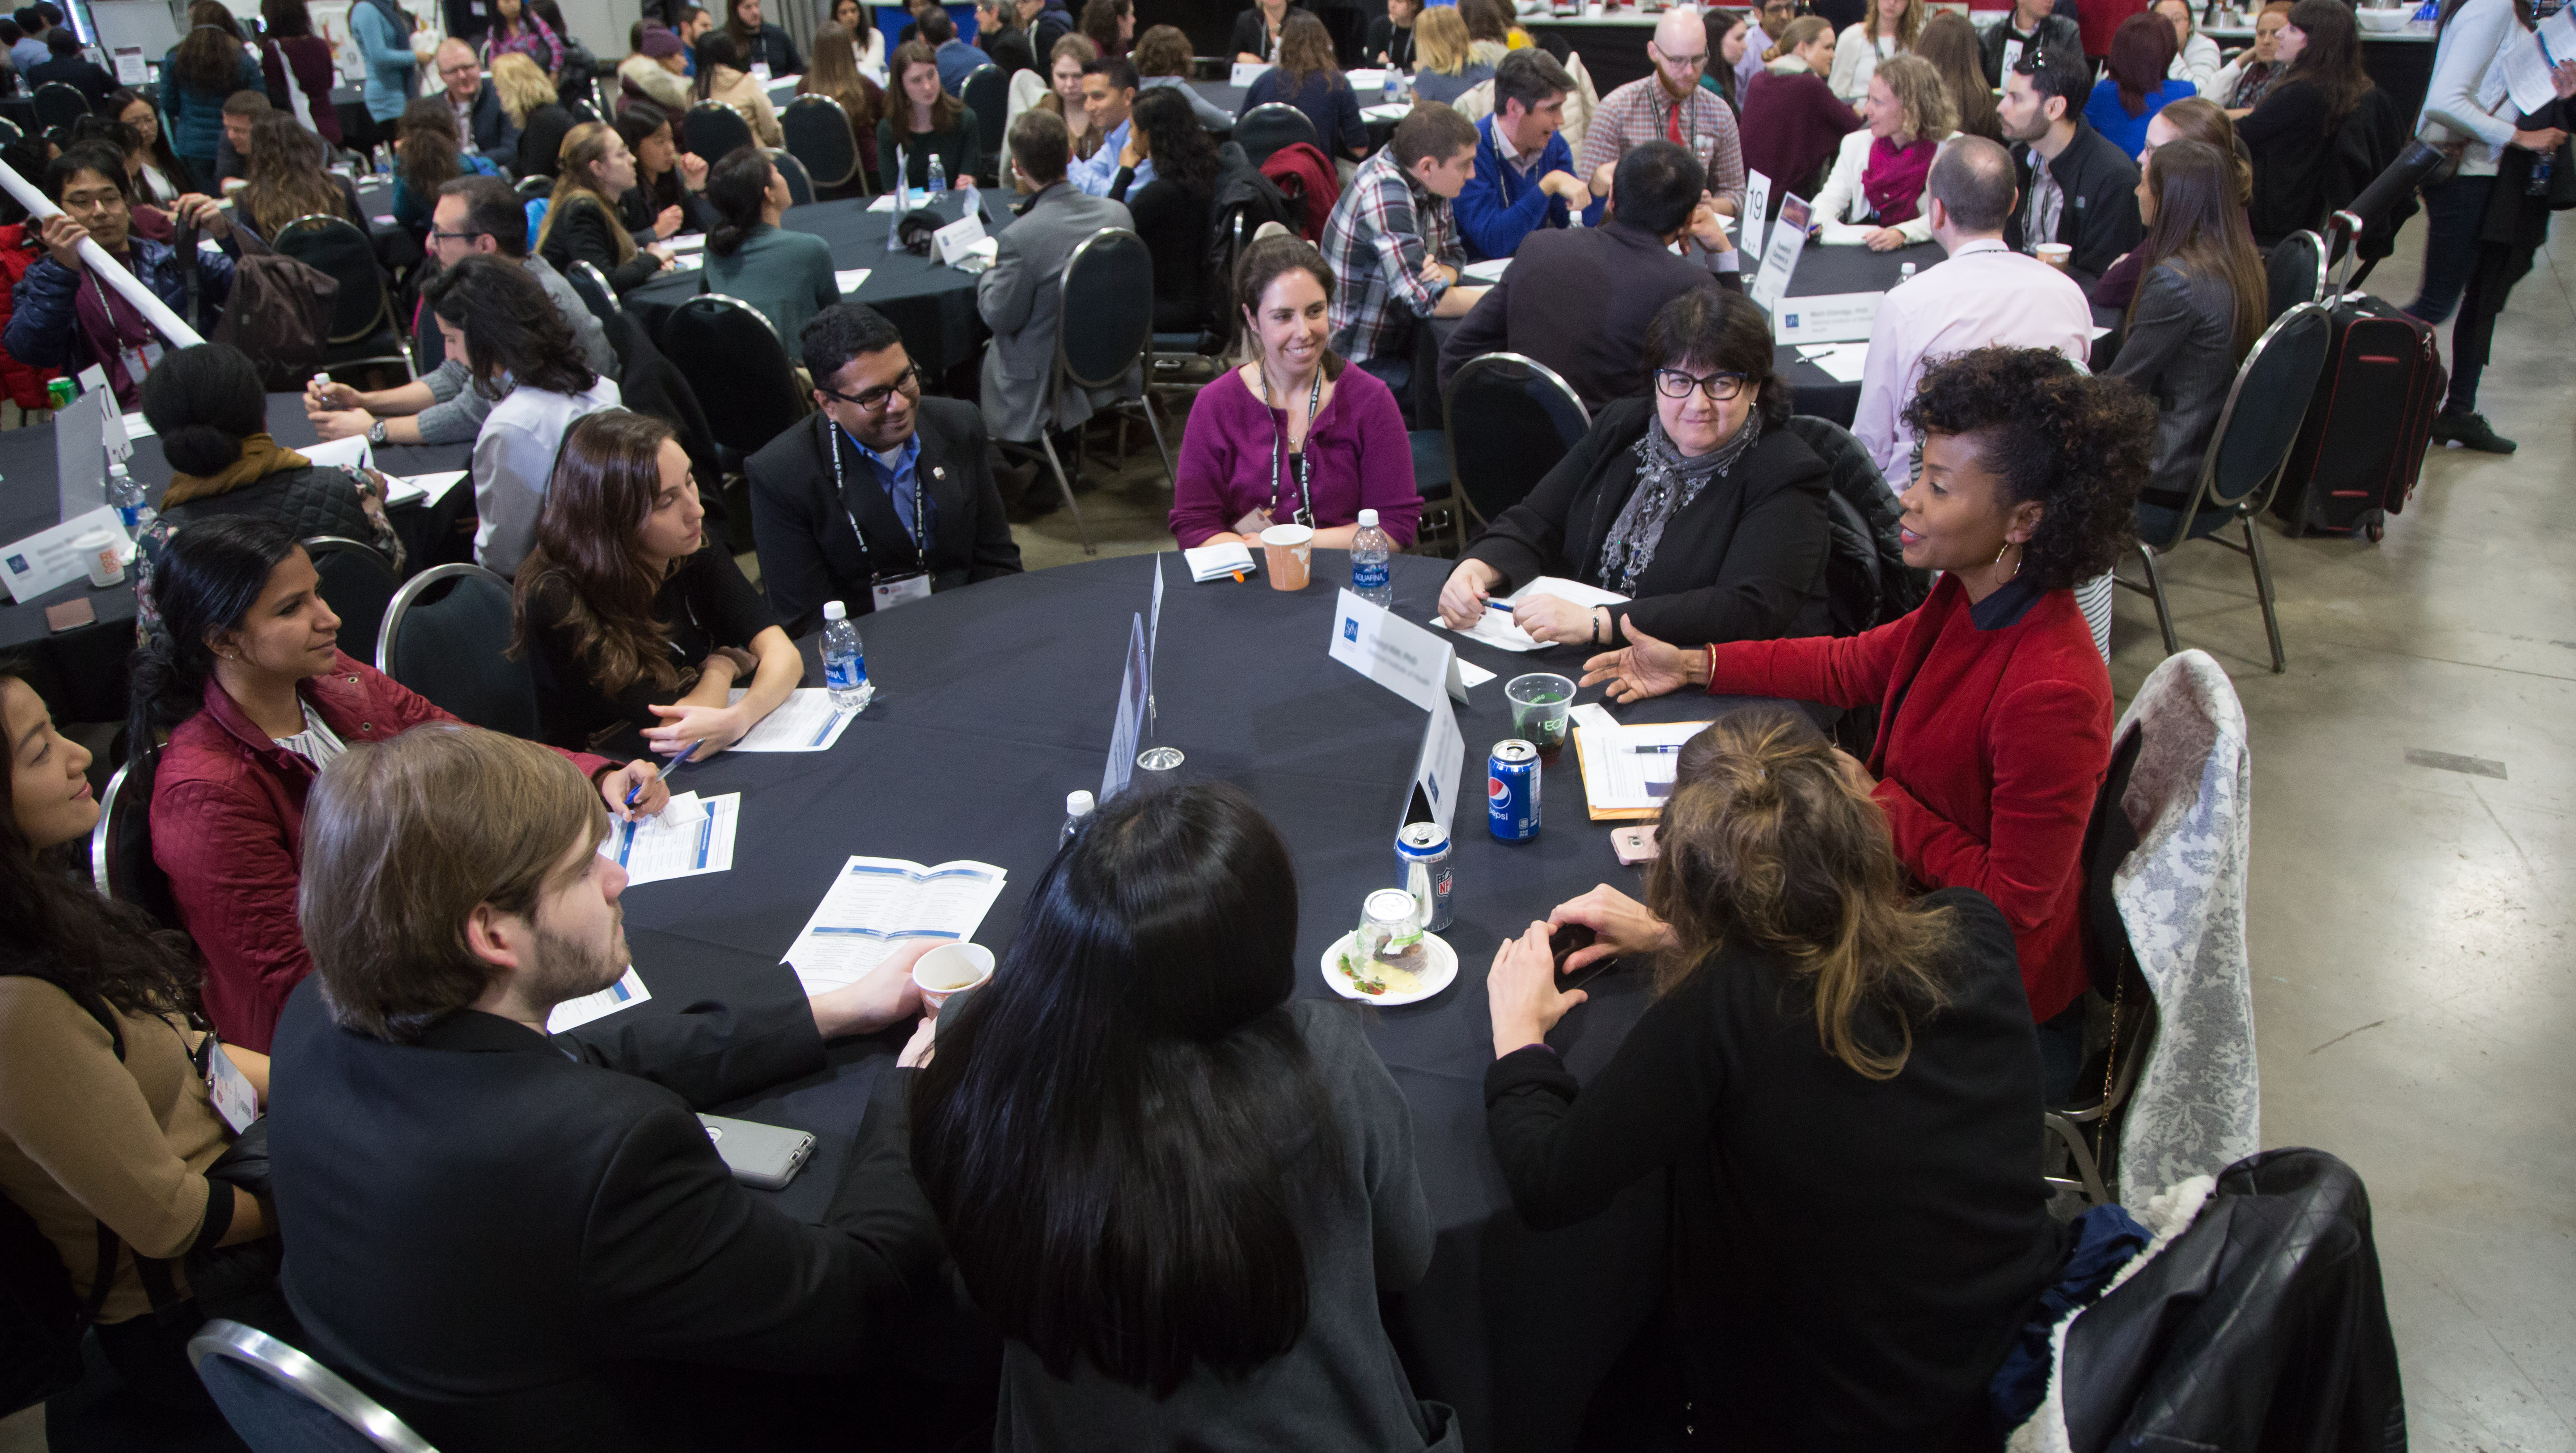 """""""Career Development Topics: A Networking Event"""" is one of many events offered at SfN's annual meeting that encourages attendees to collaborate and share experiences that can help them in their careers."""